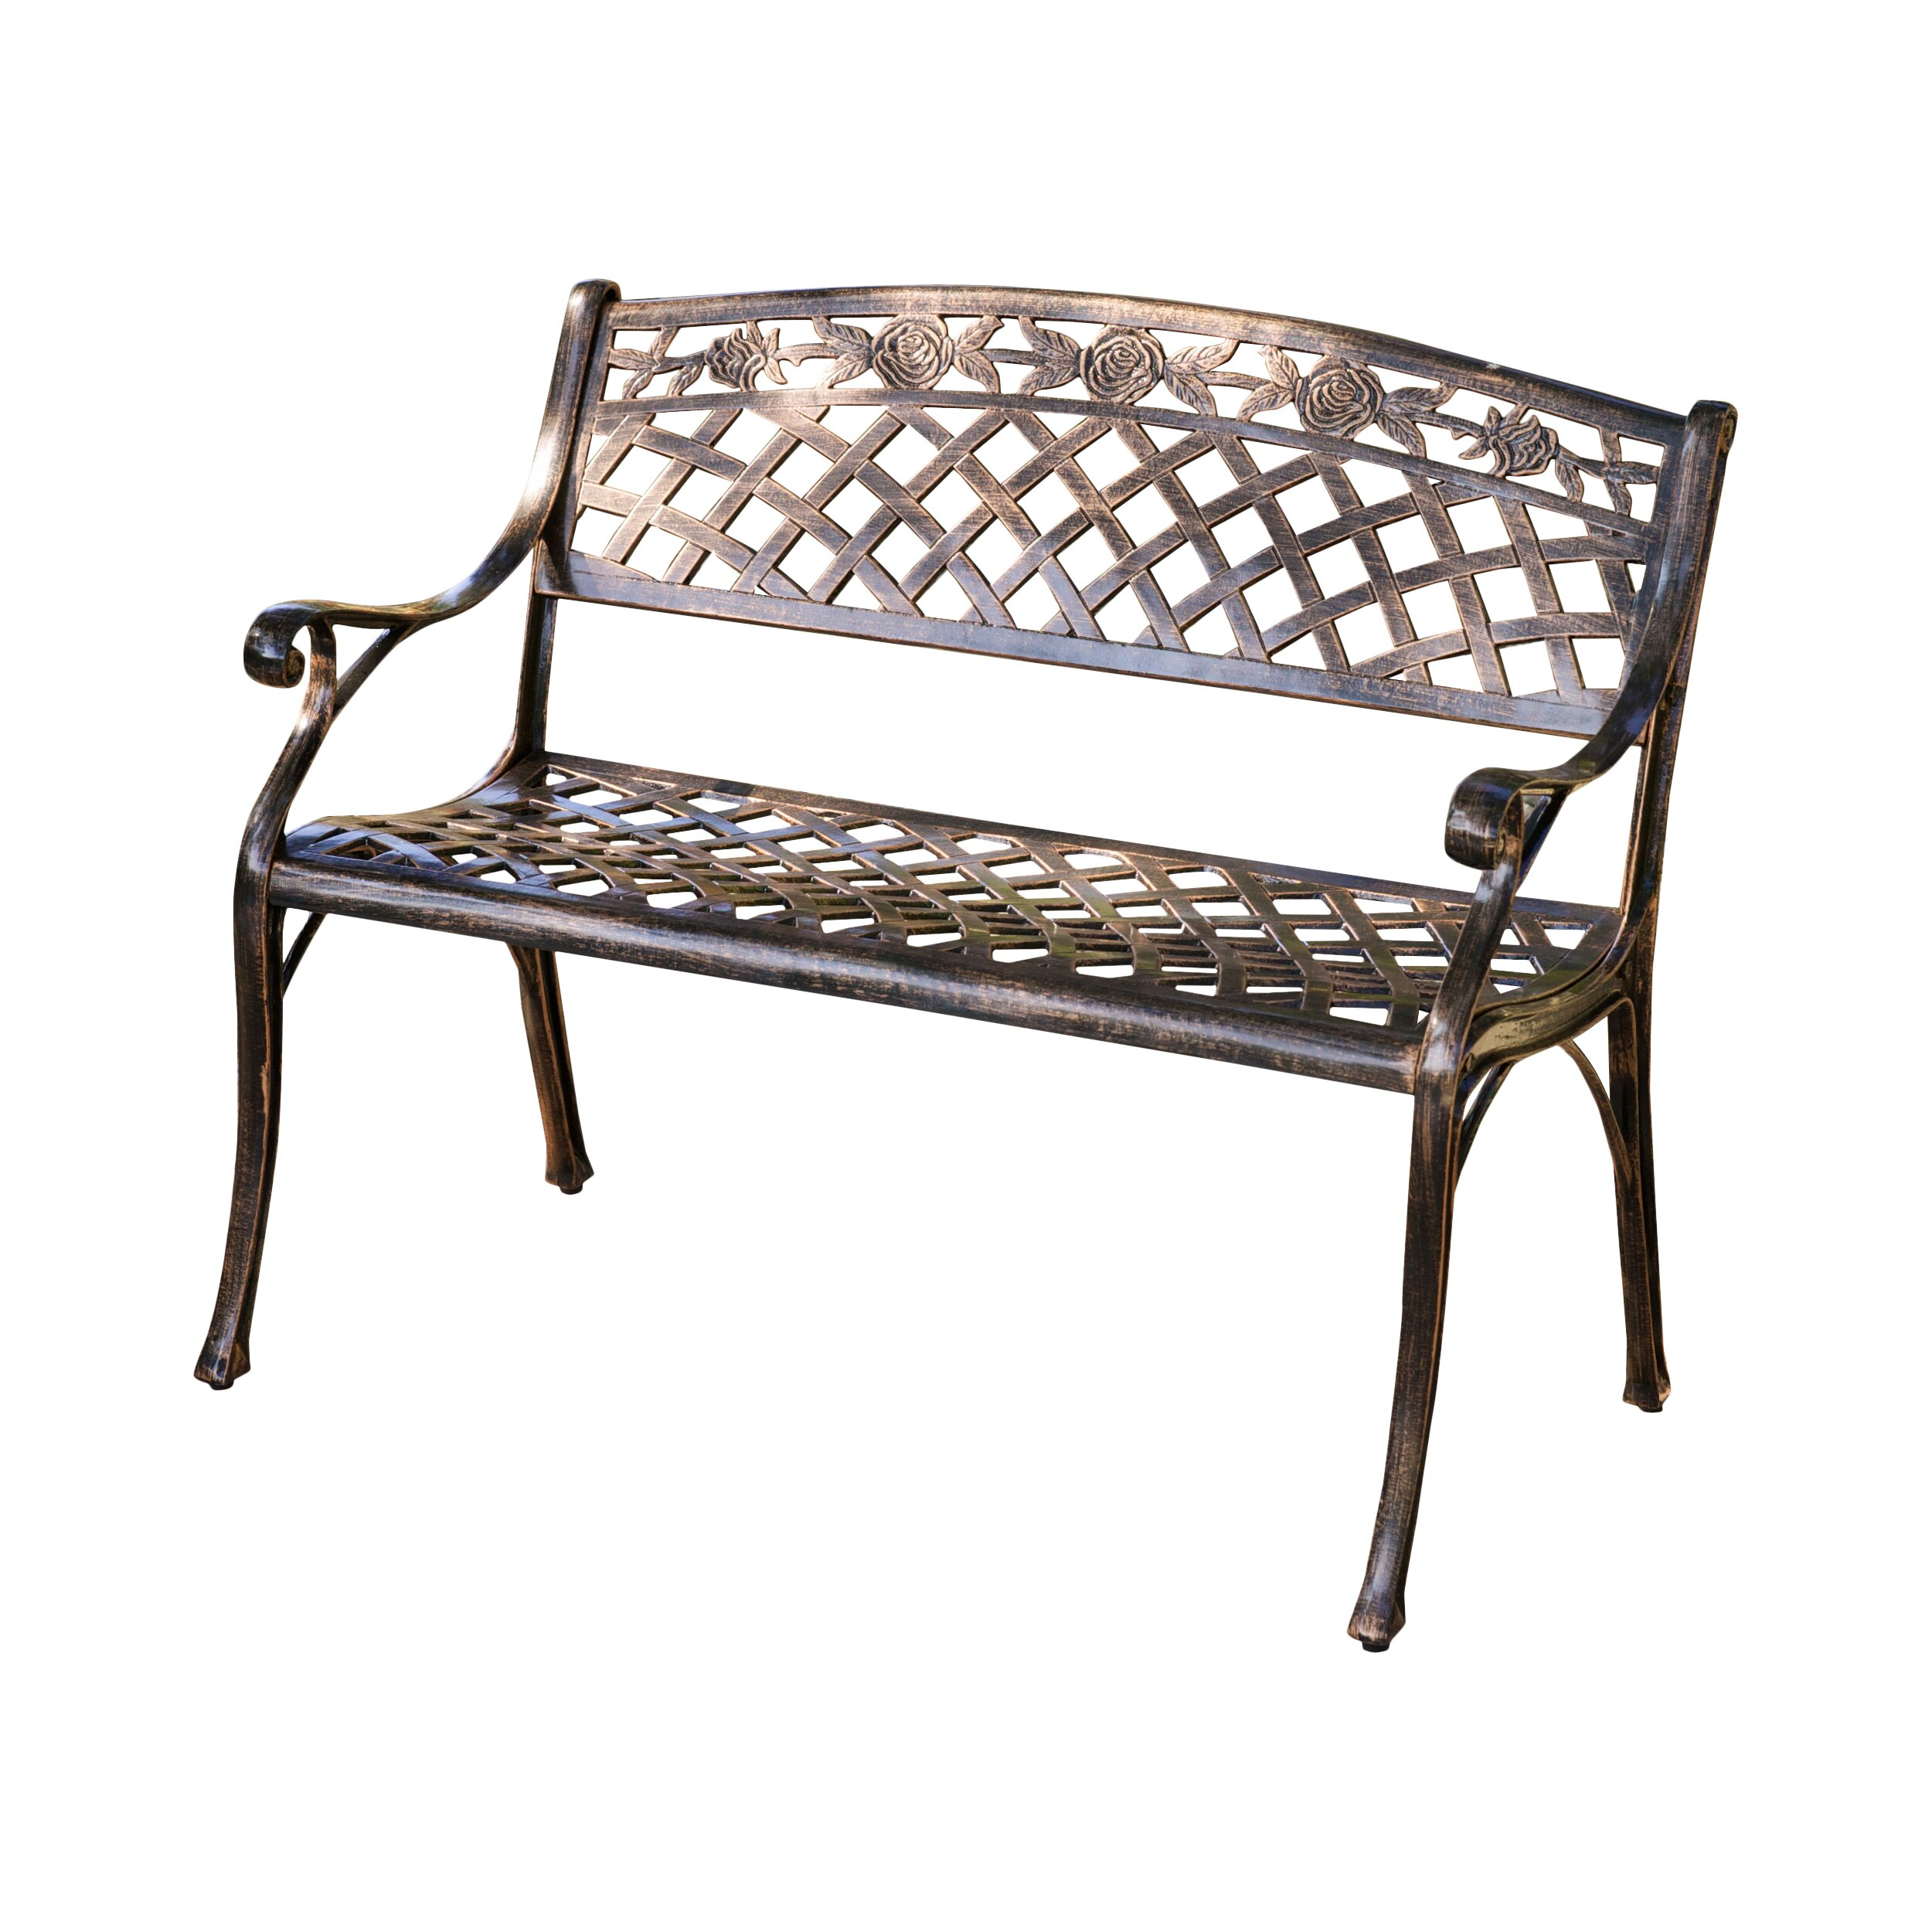 Alcott hill closson cast aluminum garden bench reviews wayfair Aluminum benches